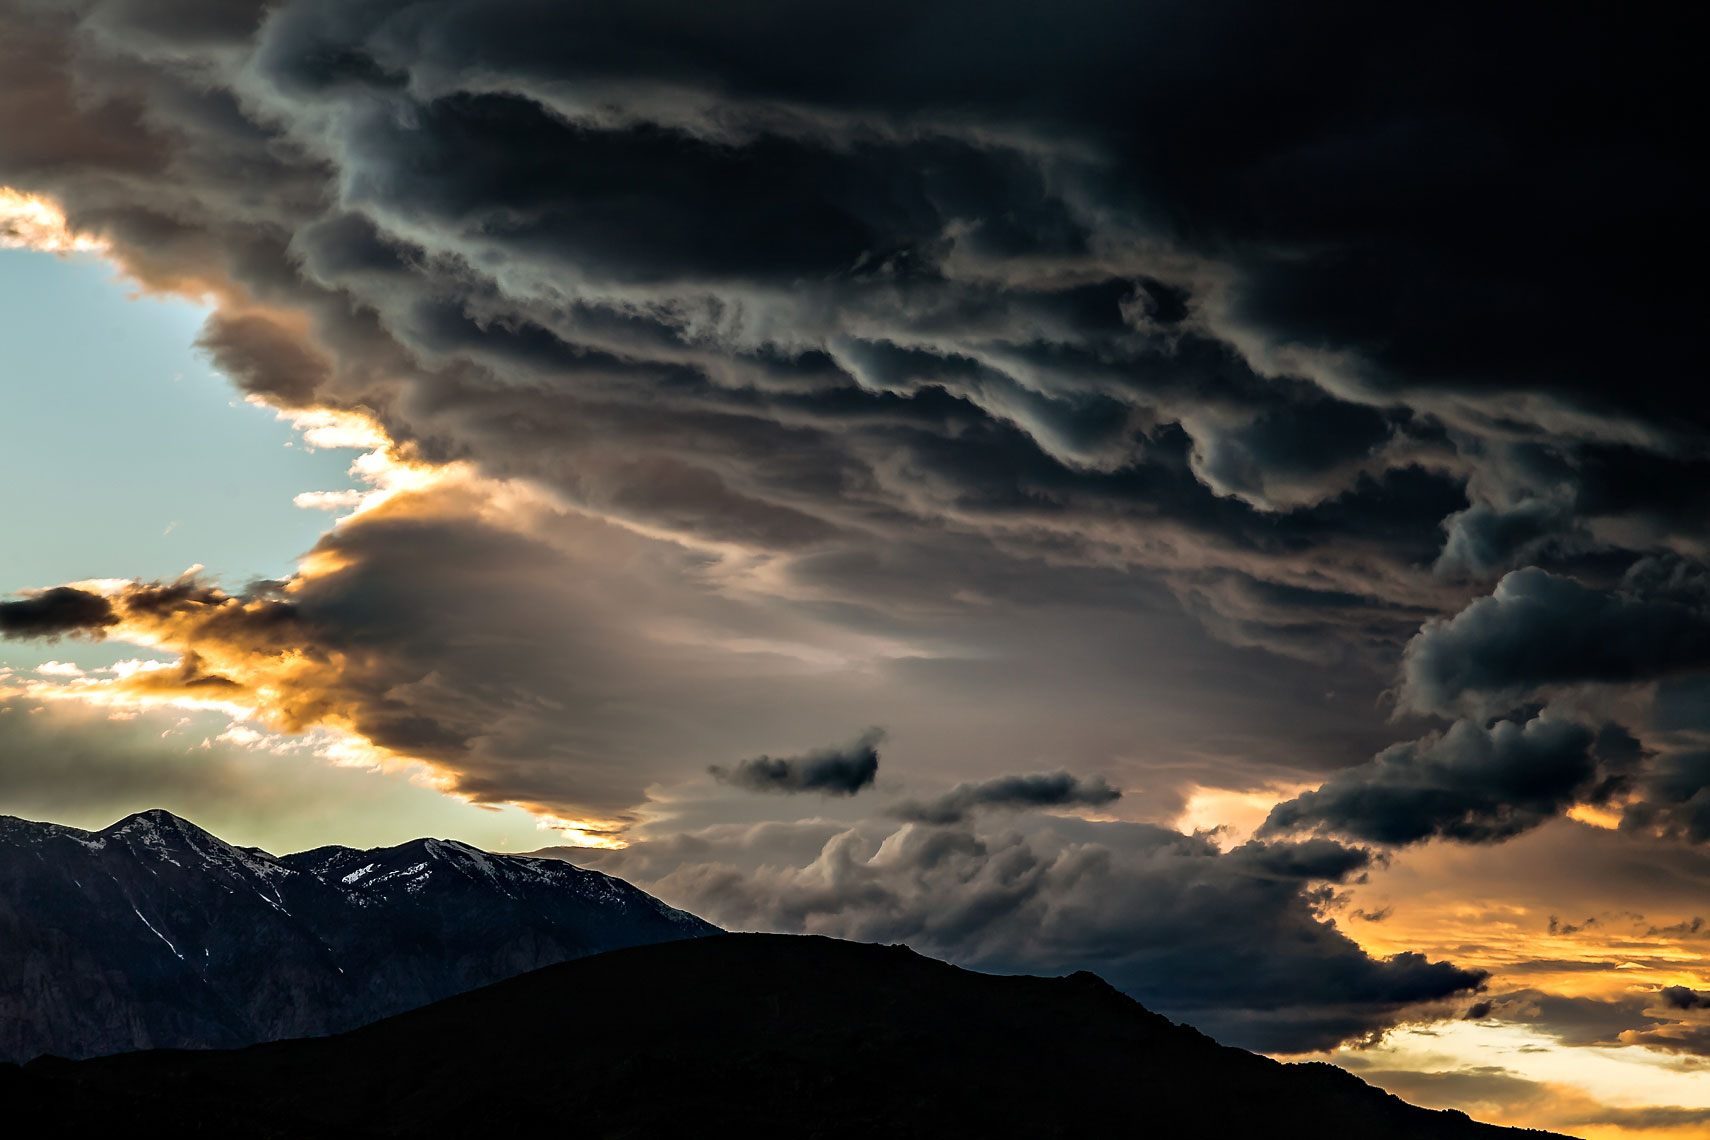 Eastern Sierra Storm Clouds